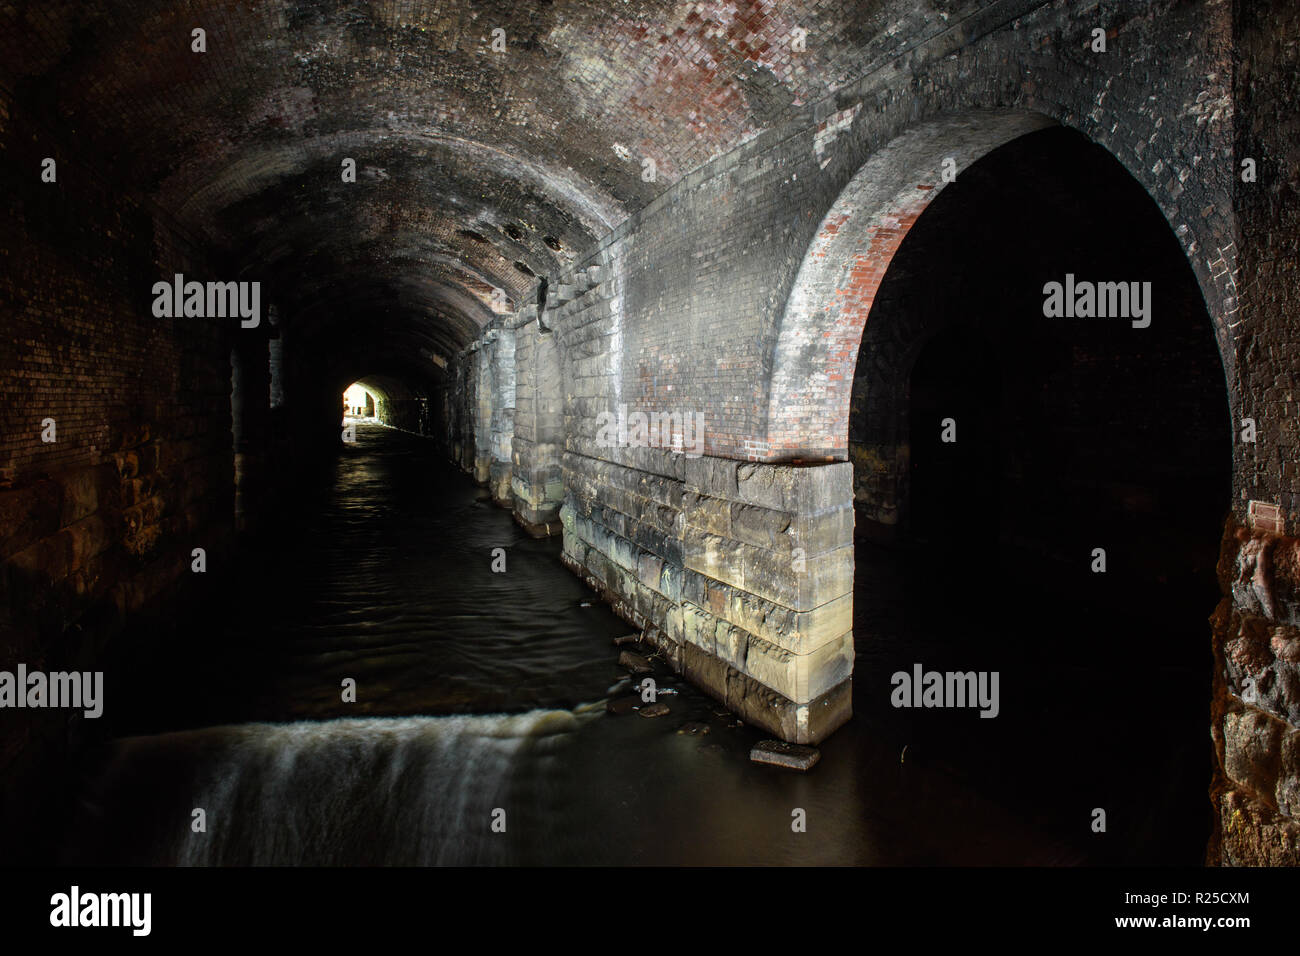 The River Aire runs through tunnels under Leeds Railway Station in Yorkshire. Stock Photo